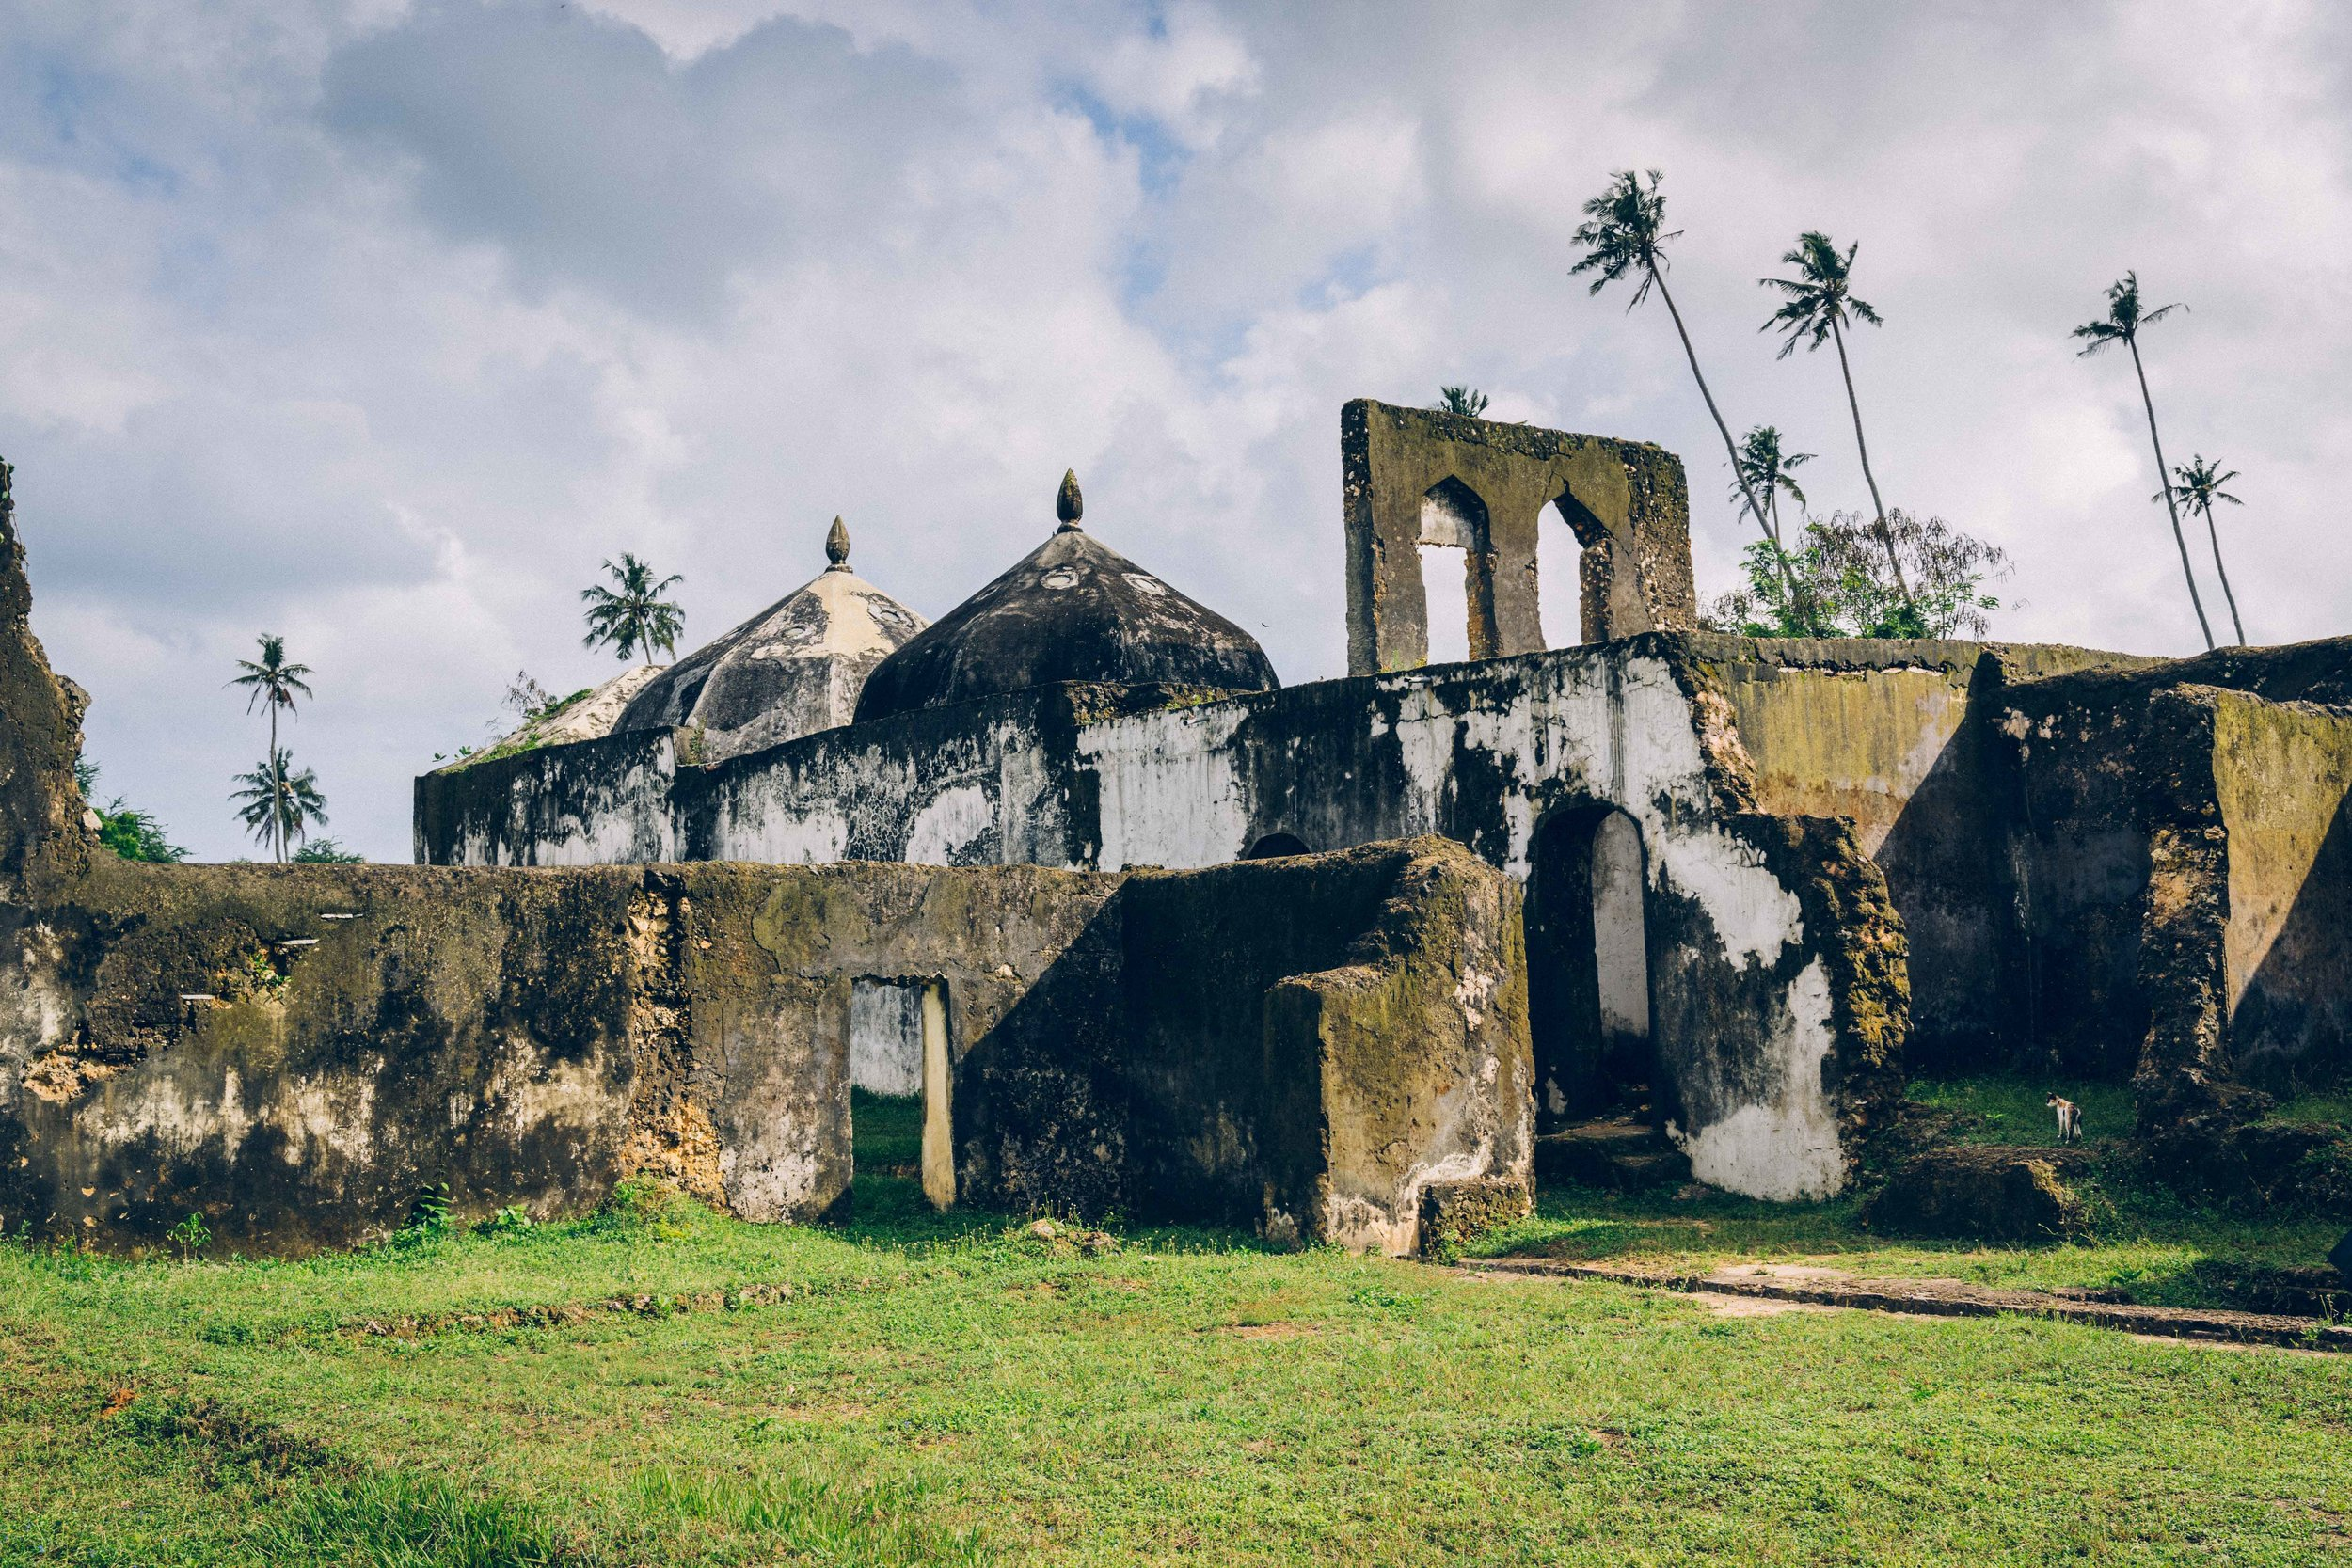 The ruins of the nearby Maruhubi palace built by the third Arab sultan of Zanzibar between 1880-1882.